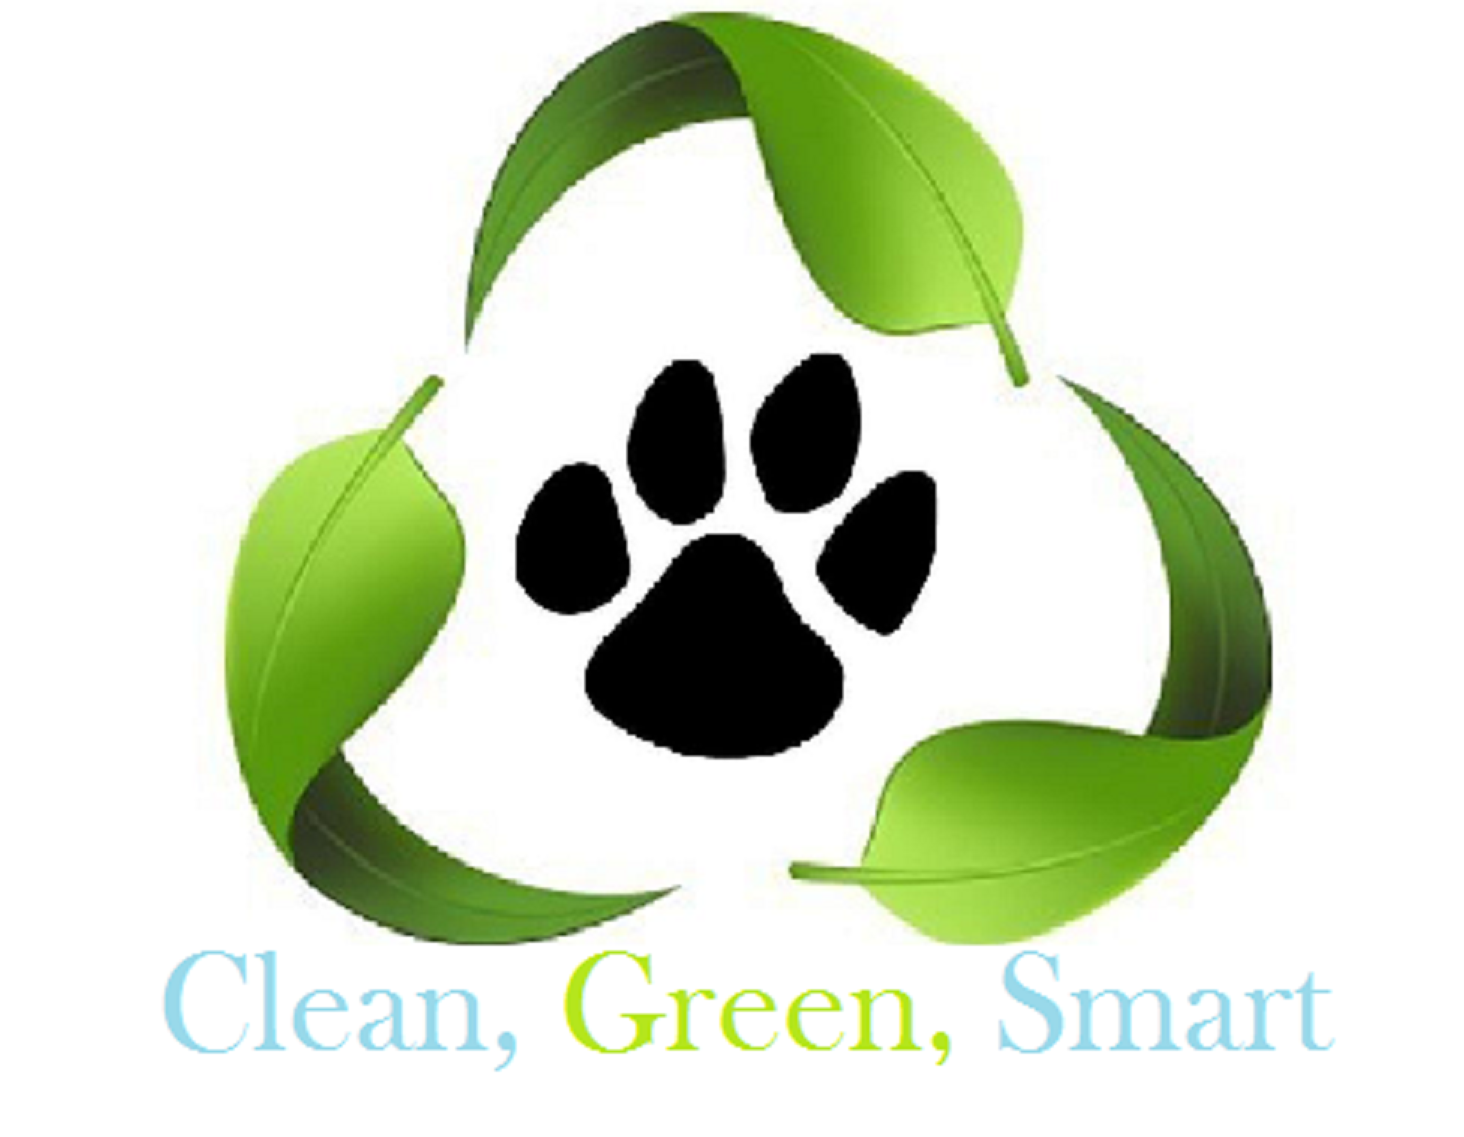 cean green smart.png